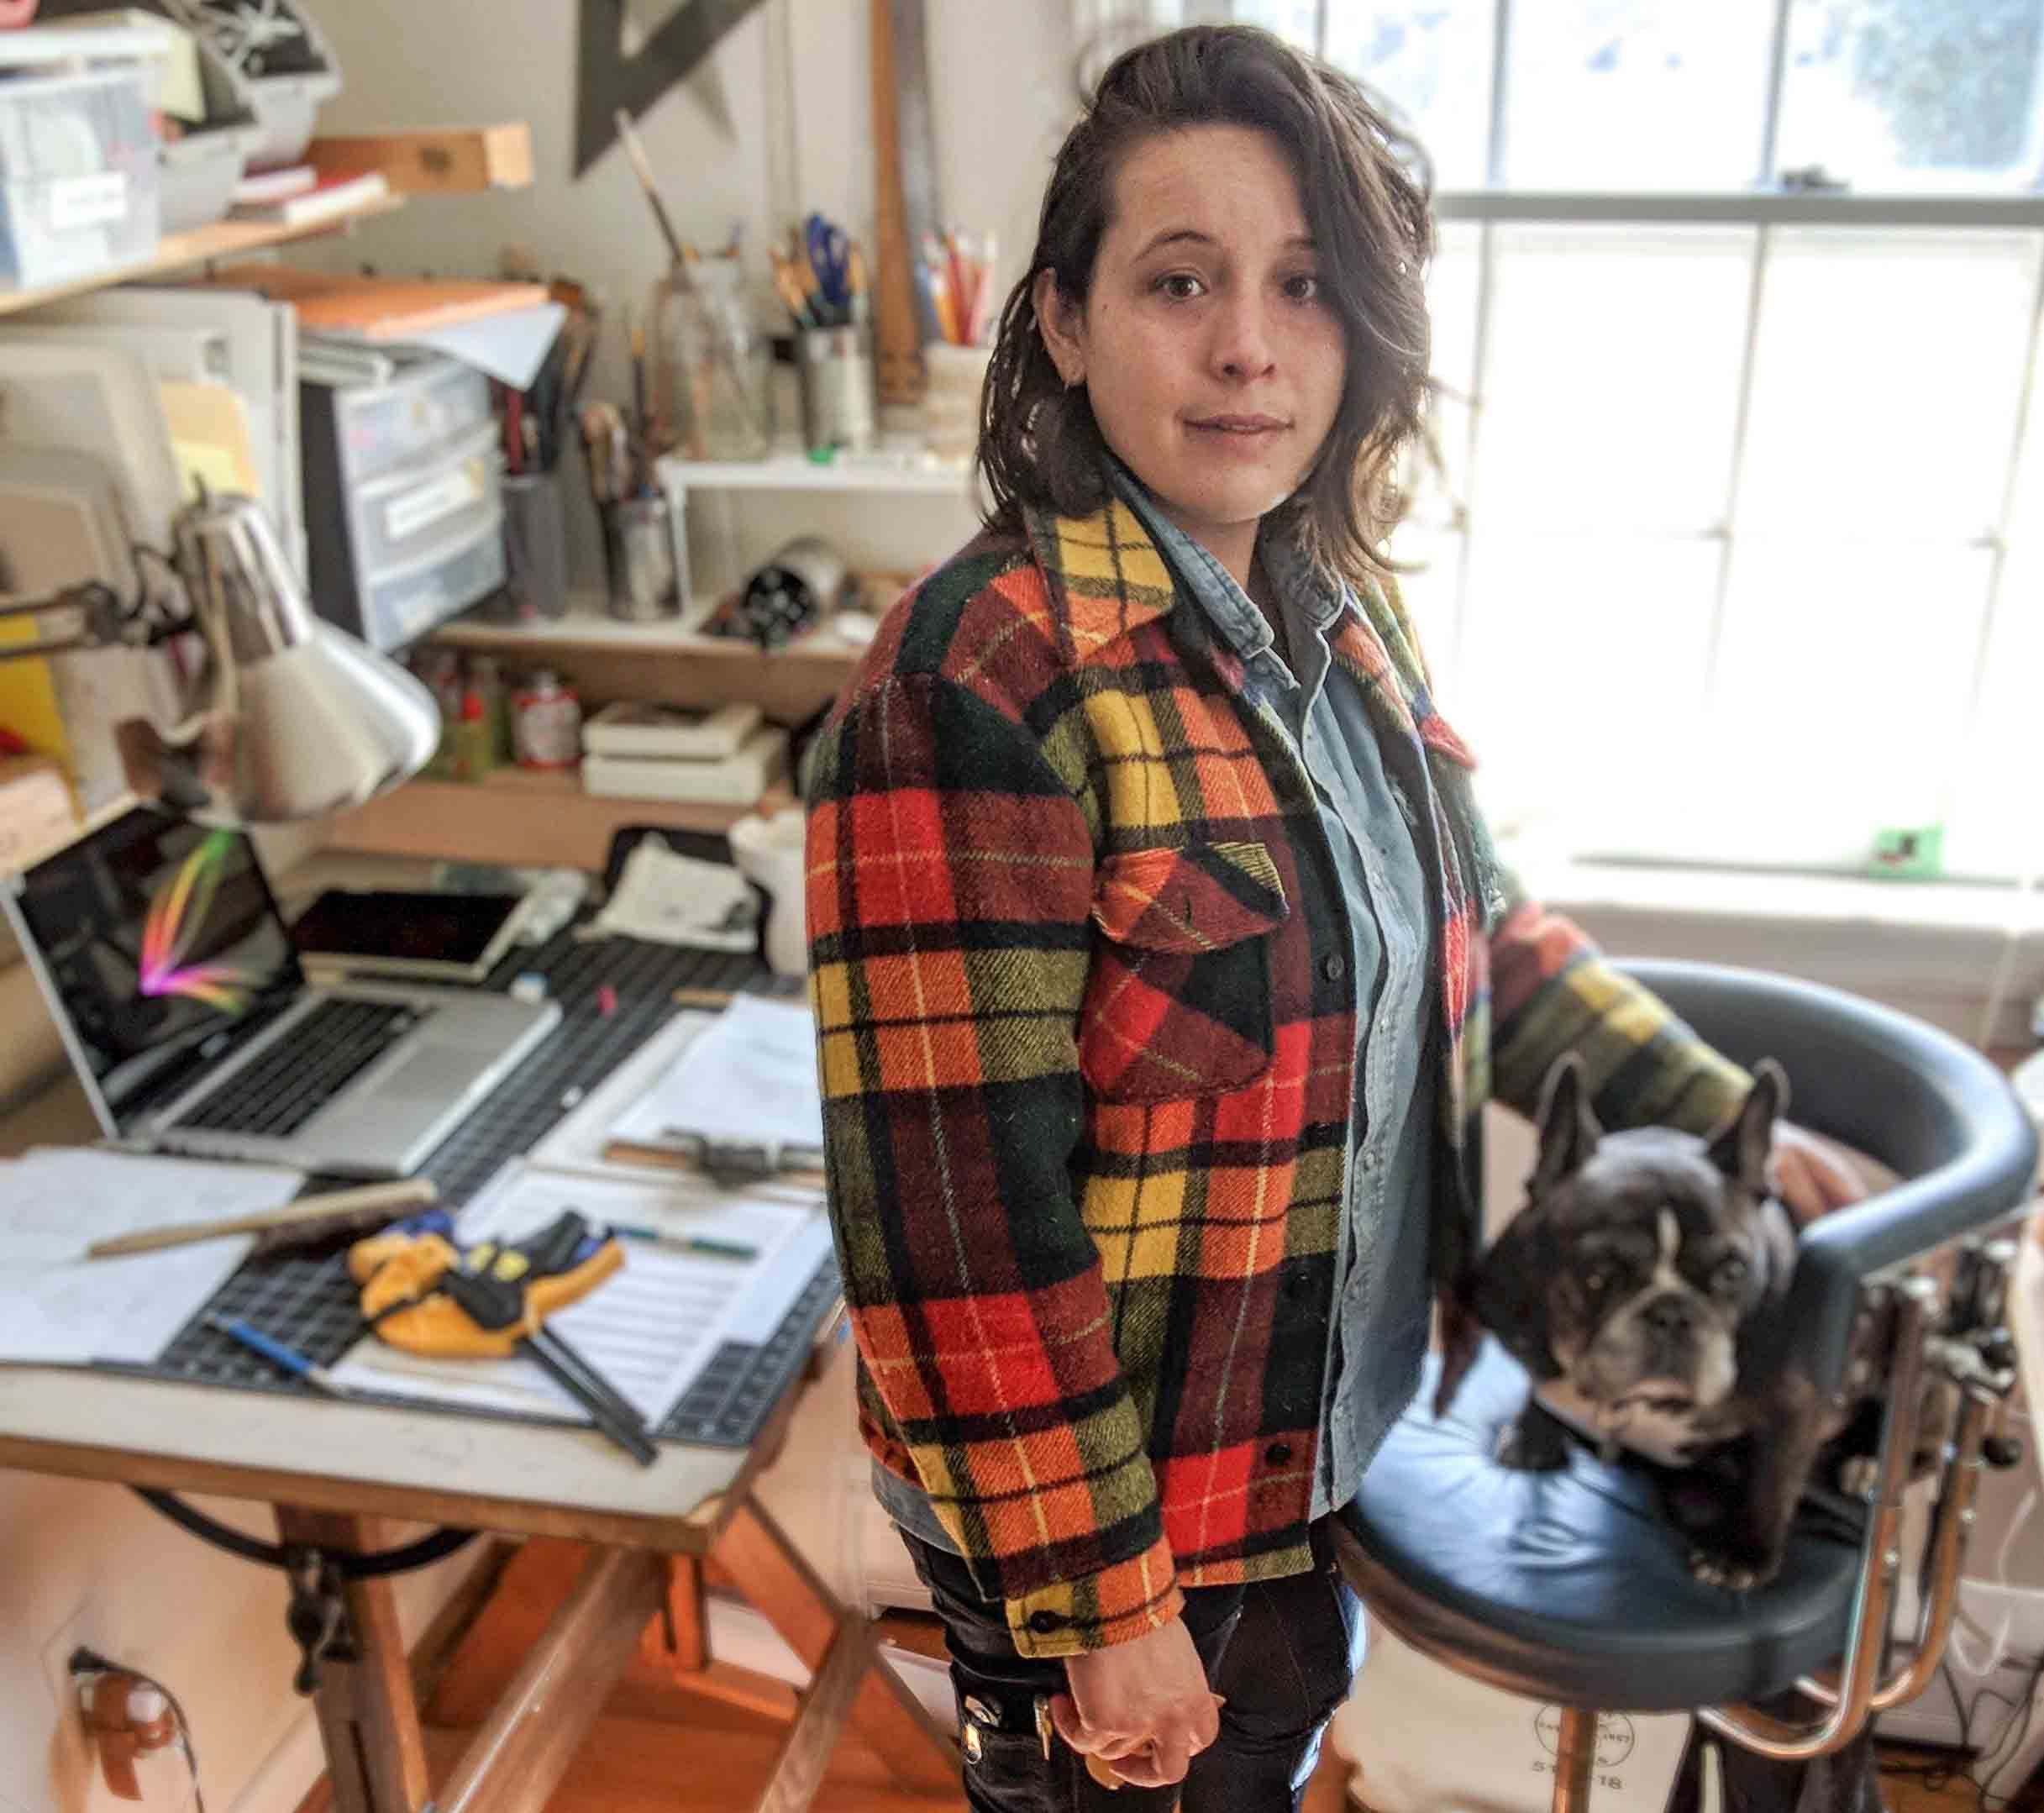 Women to Watch: Artist Nikki Leone, February 2018